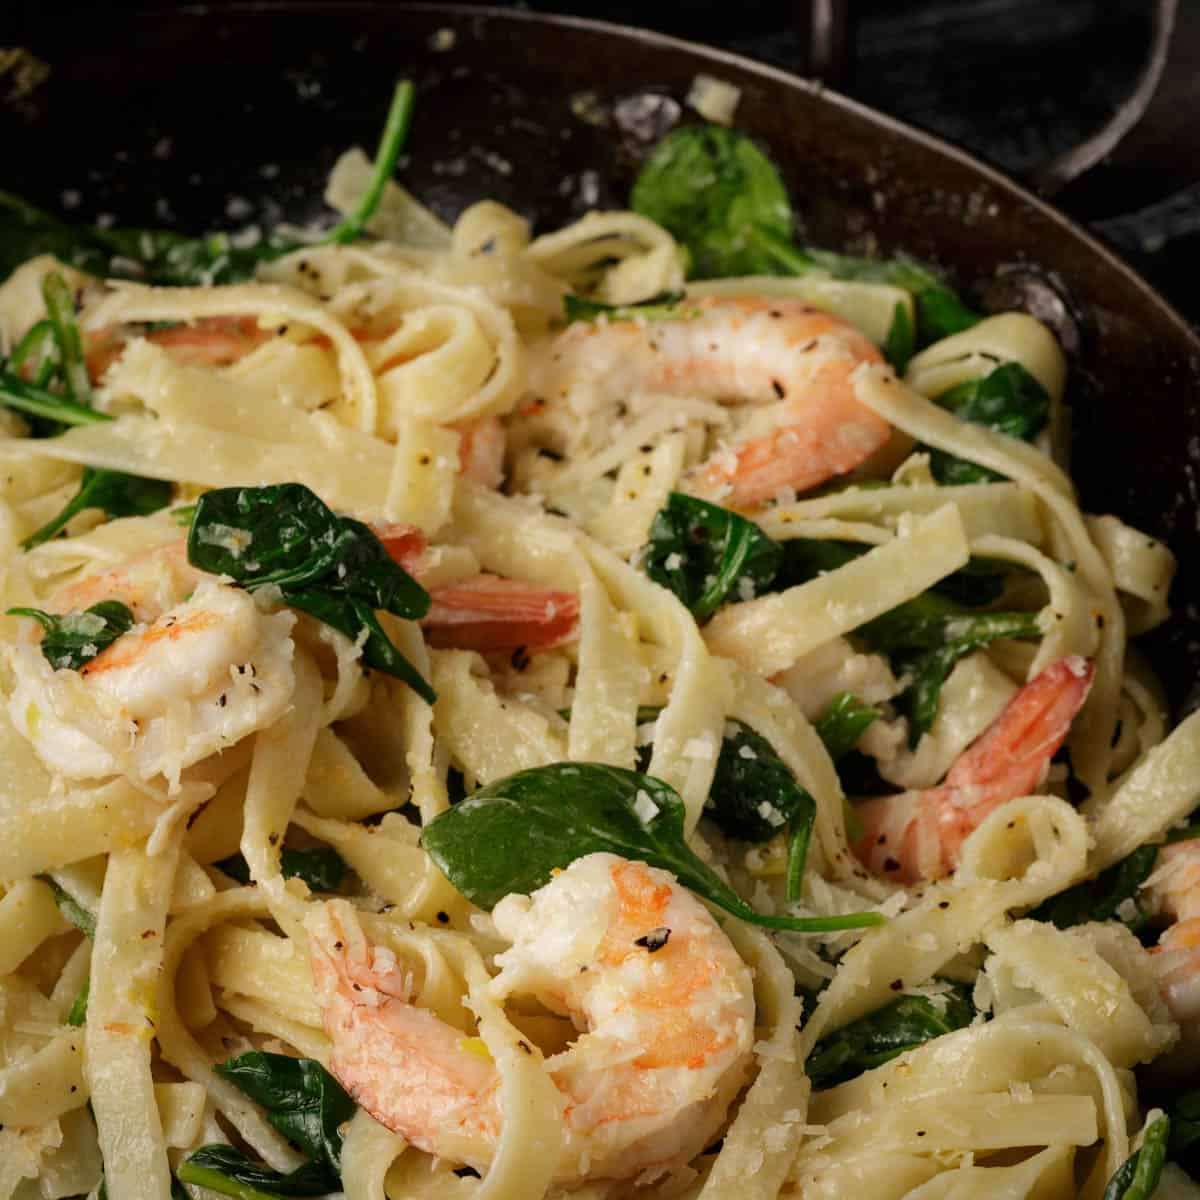 A skillet of shrimp and spinach pasta